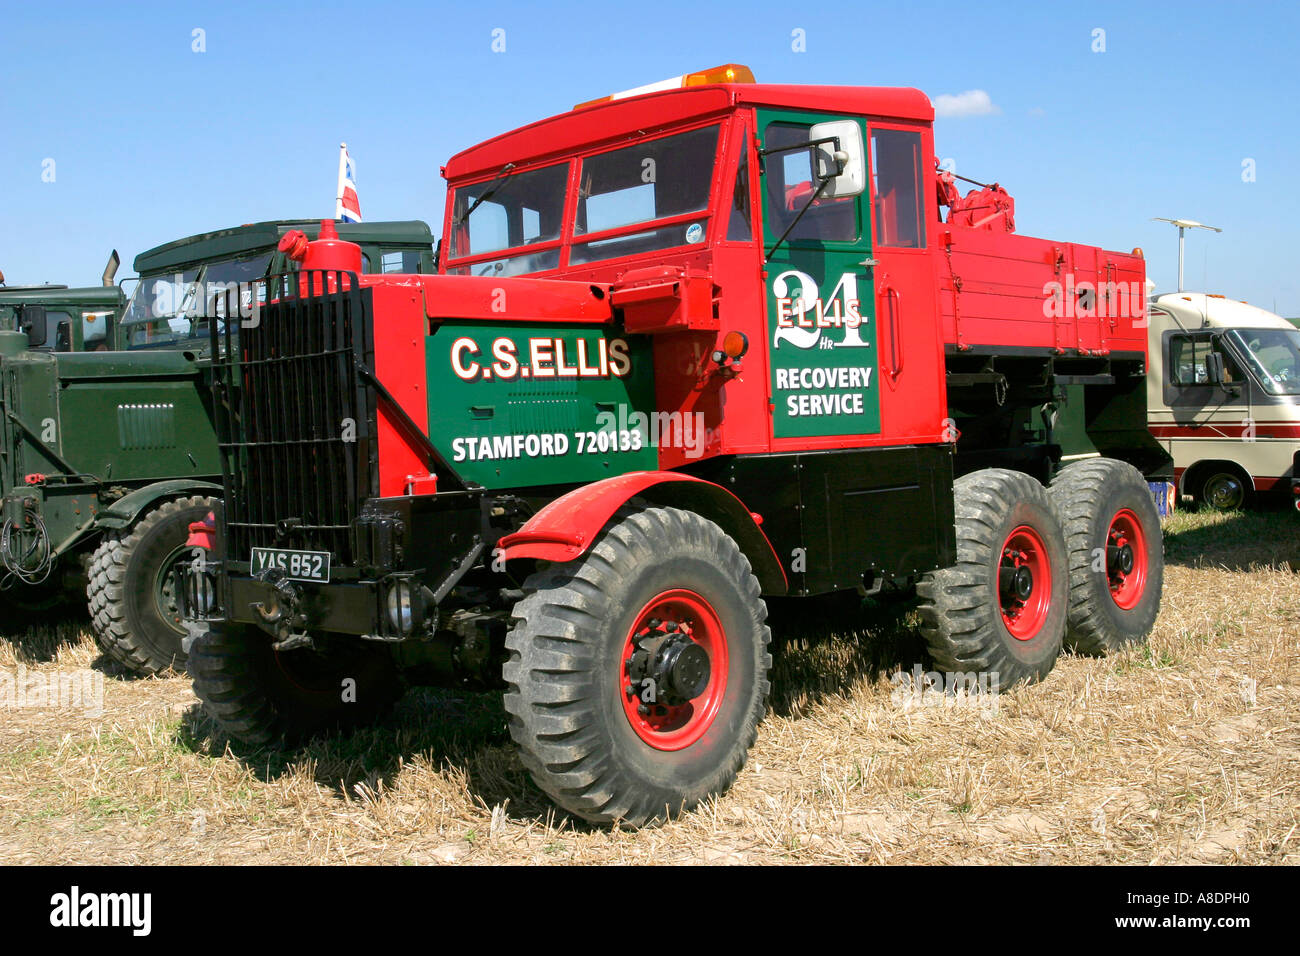 C.S. Ellis Scammell Explorer recovery vehicle at the Dorset Steam Fair, England, UK. - Stock Image